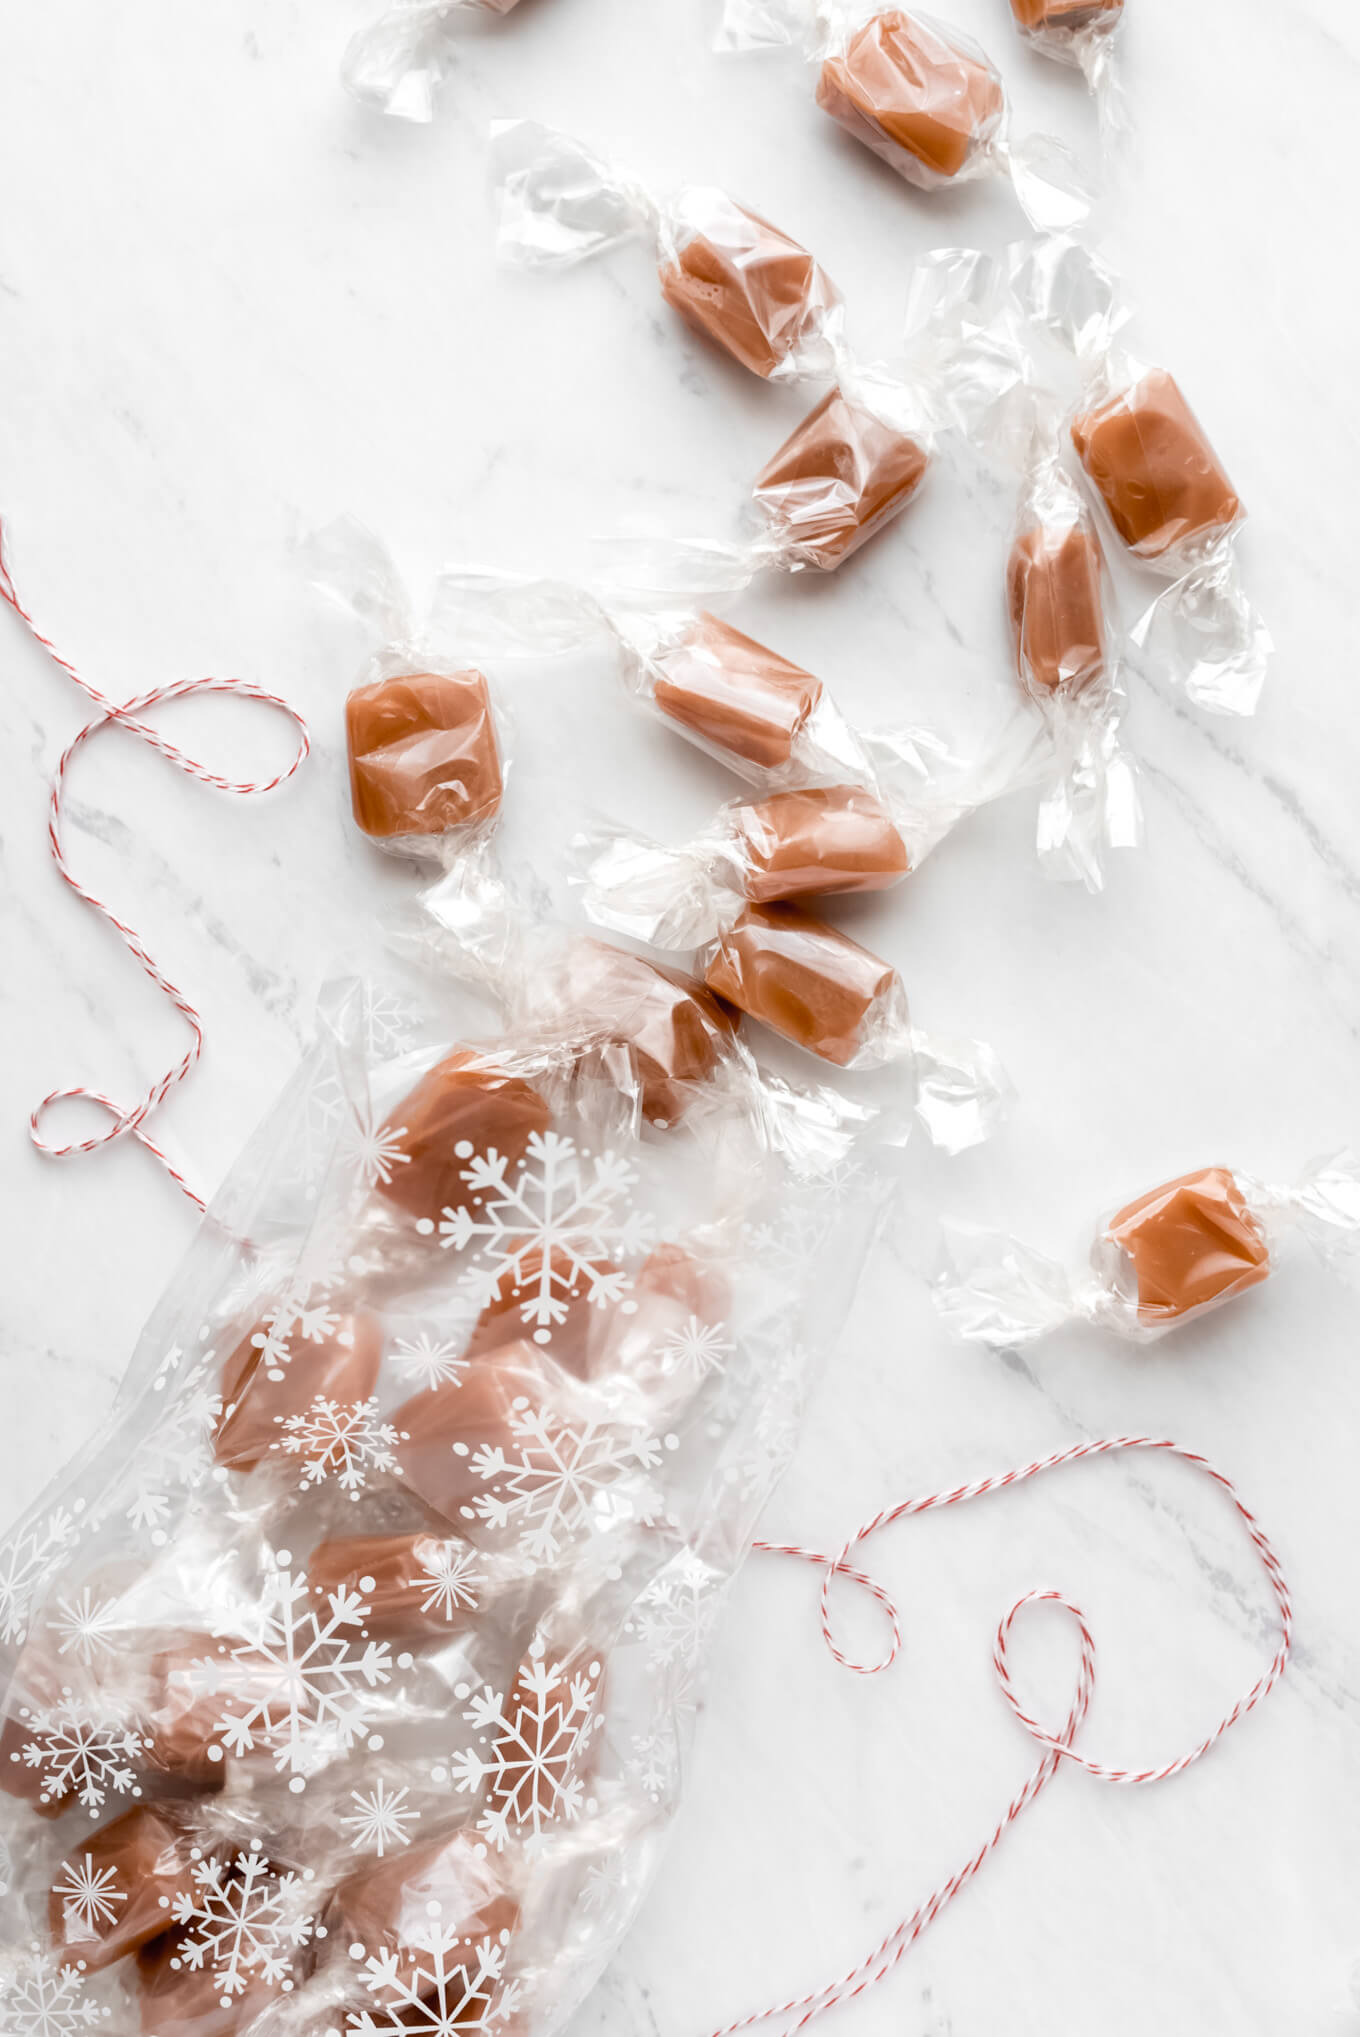 Homemade caramel wrapped in cellophane and spilling out of a cellophane bag onto a marble surface.